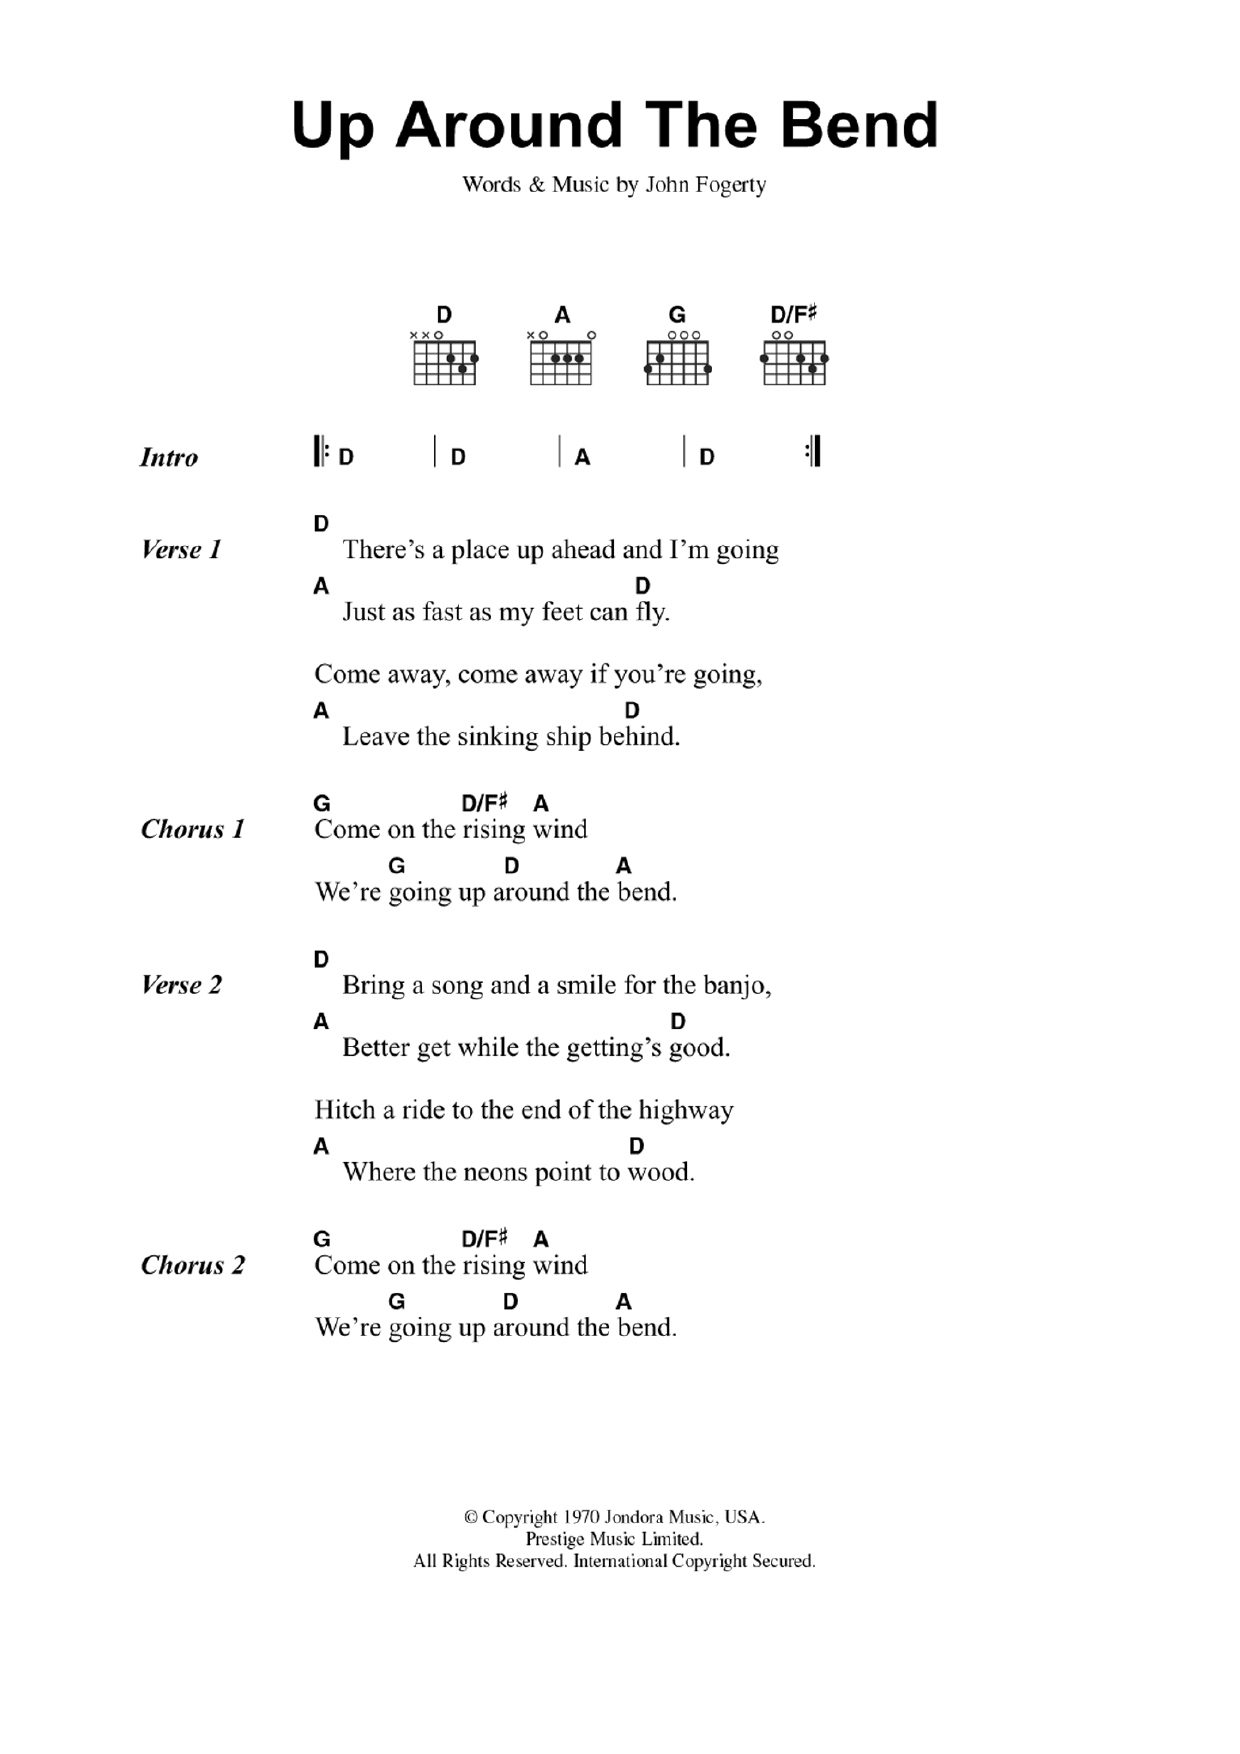 Up Around The Bendcreedence Clearwater Revival Guitar Chords Lyrics